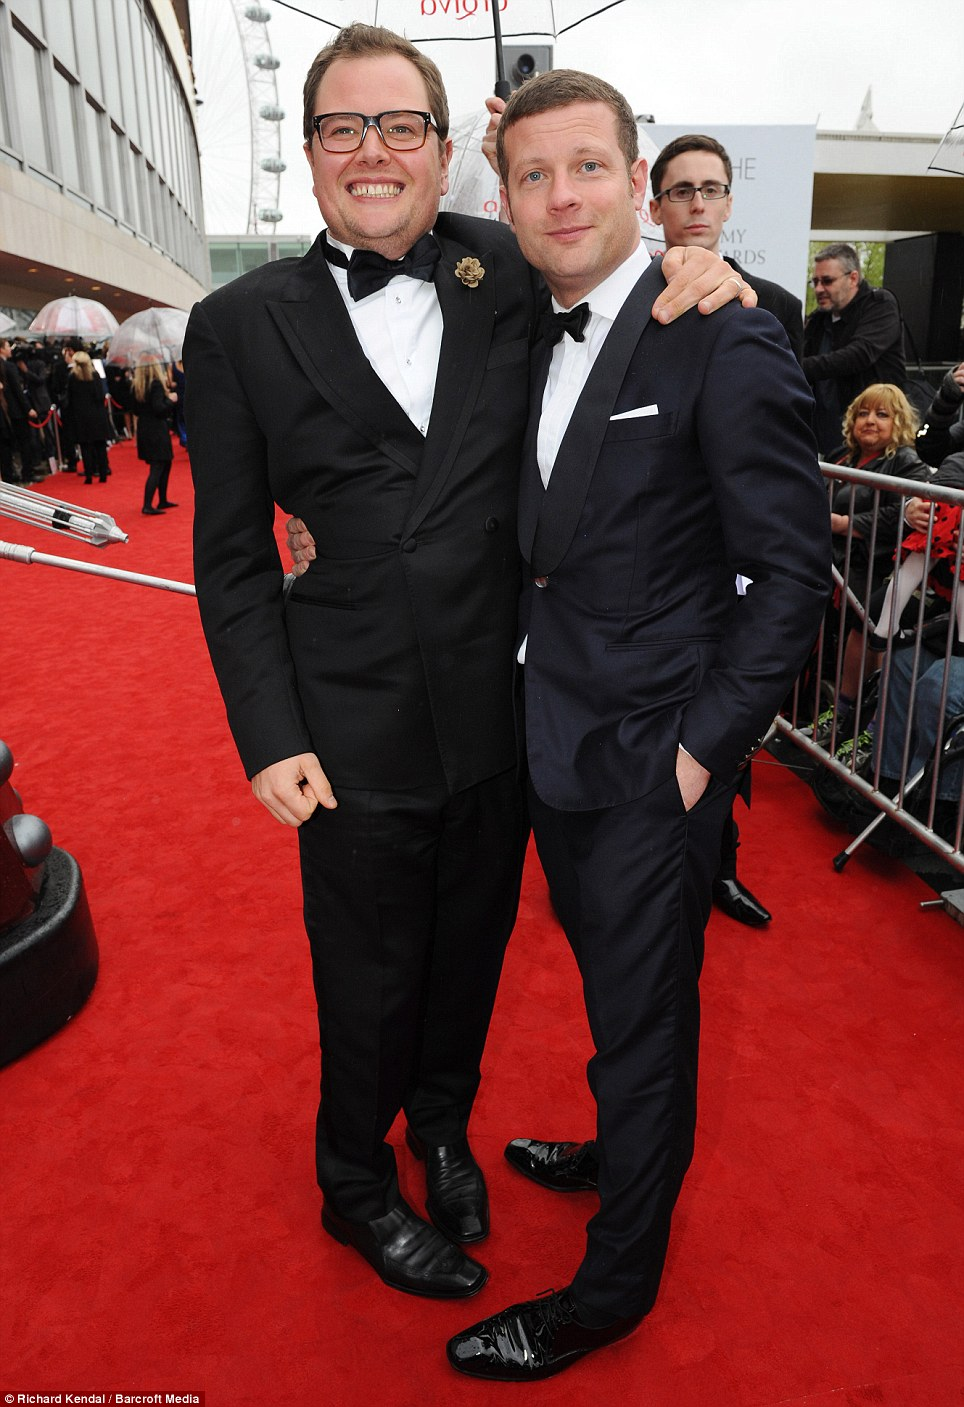 Suited and booted: Alan Carr and Dermot O'Leary both looked dapper for the night of awards